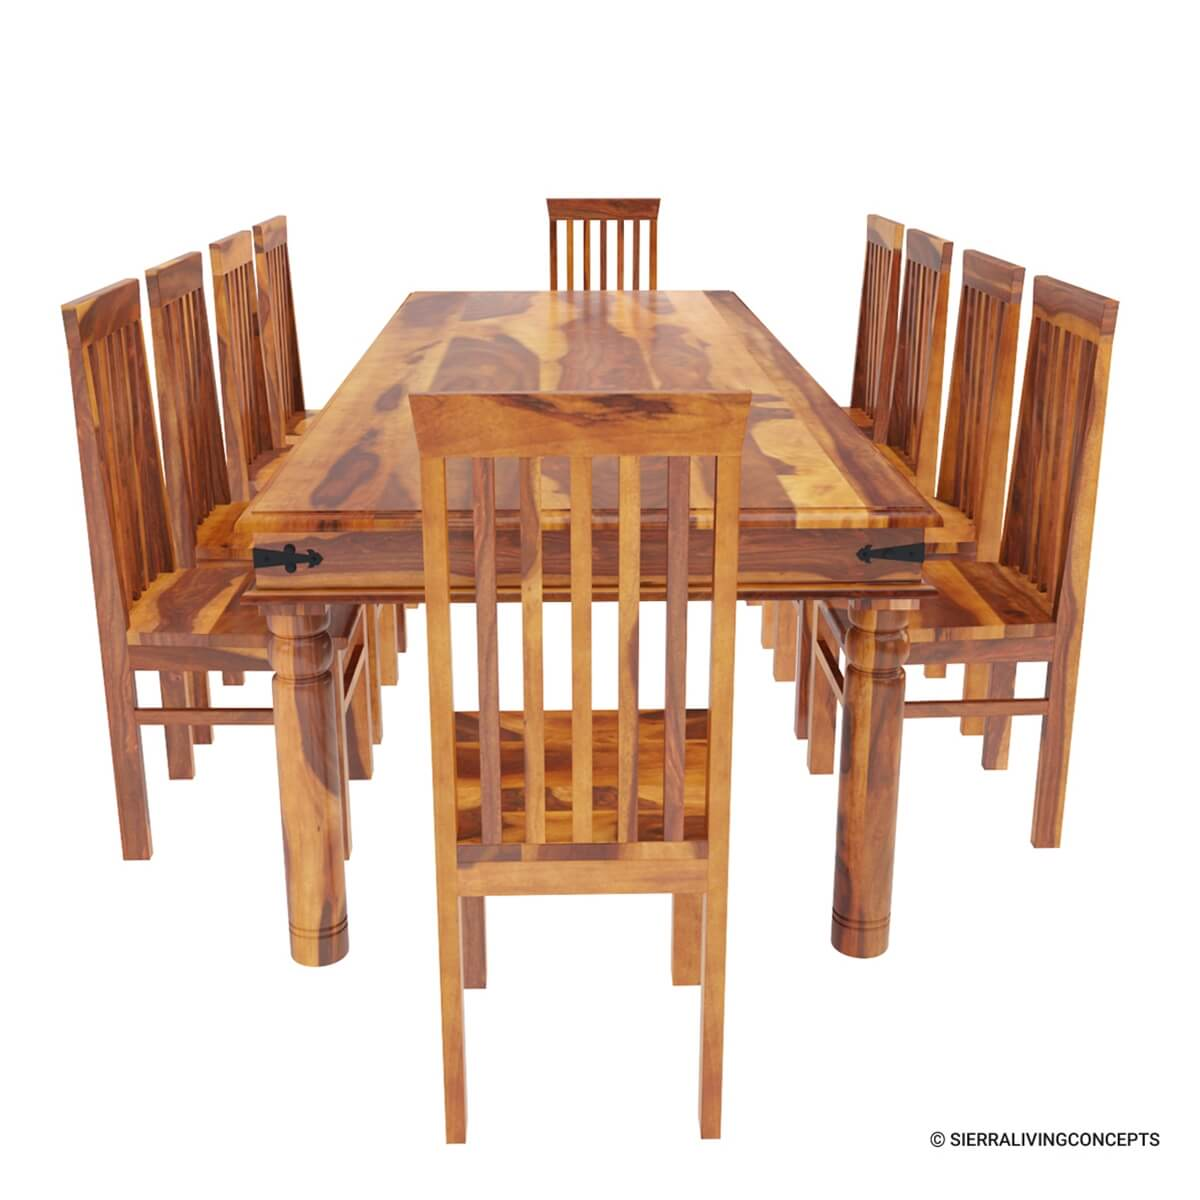 Dining Room Table With Chairs Rustic Lincoln Study Large Dining Room Table Chair Set For